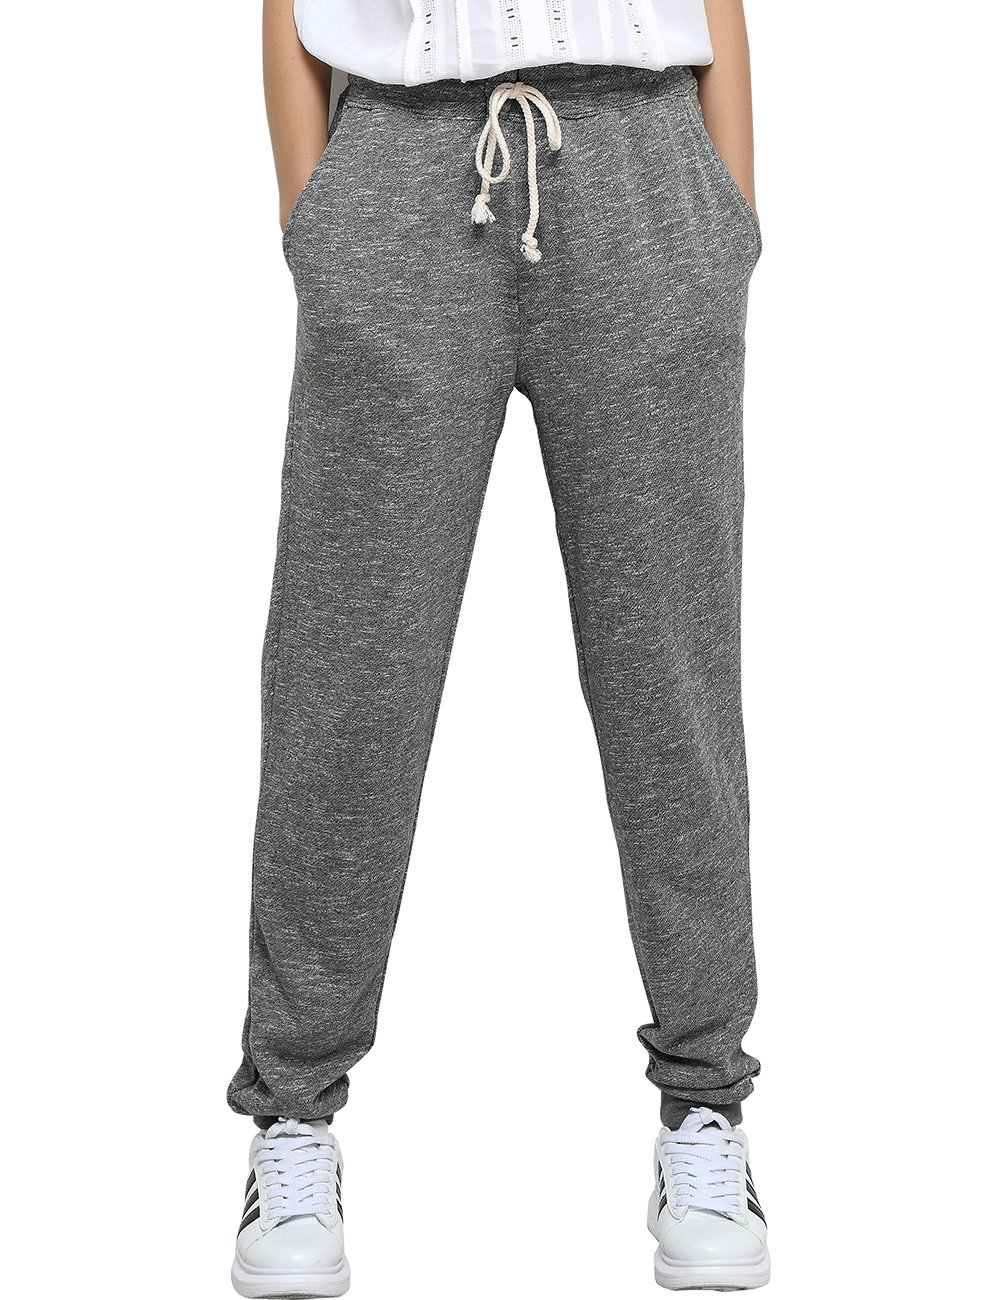 T-INSIDE Sweatpants With Pockets Women's Leisure Gray Joggers Pants (M)